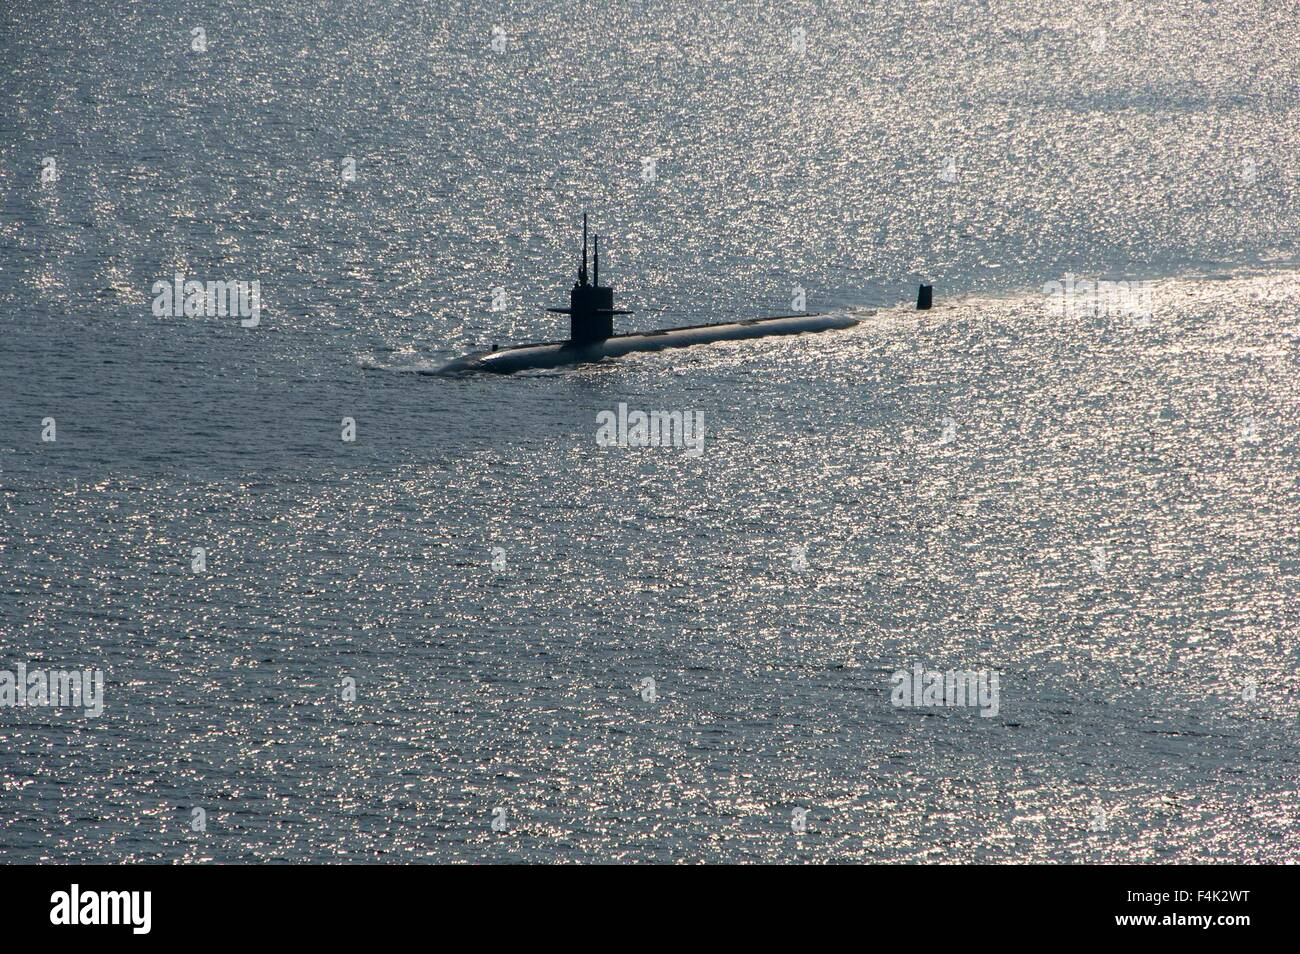 US Navy The Los Angeles-class attack submarine USS City of Corpus Christi during Exercise Malabar October 16, 2015 - Stock Image